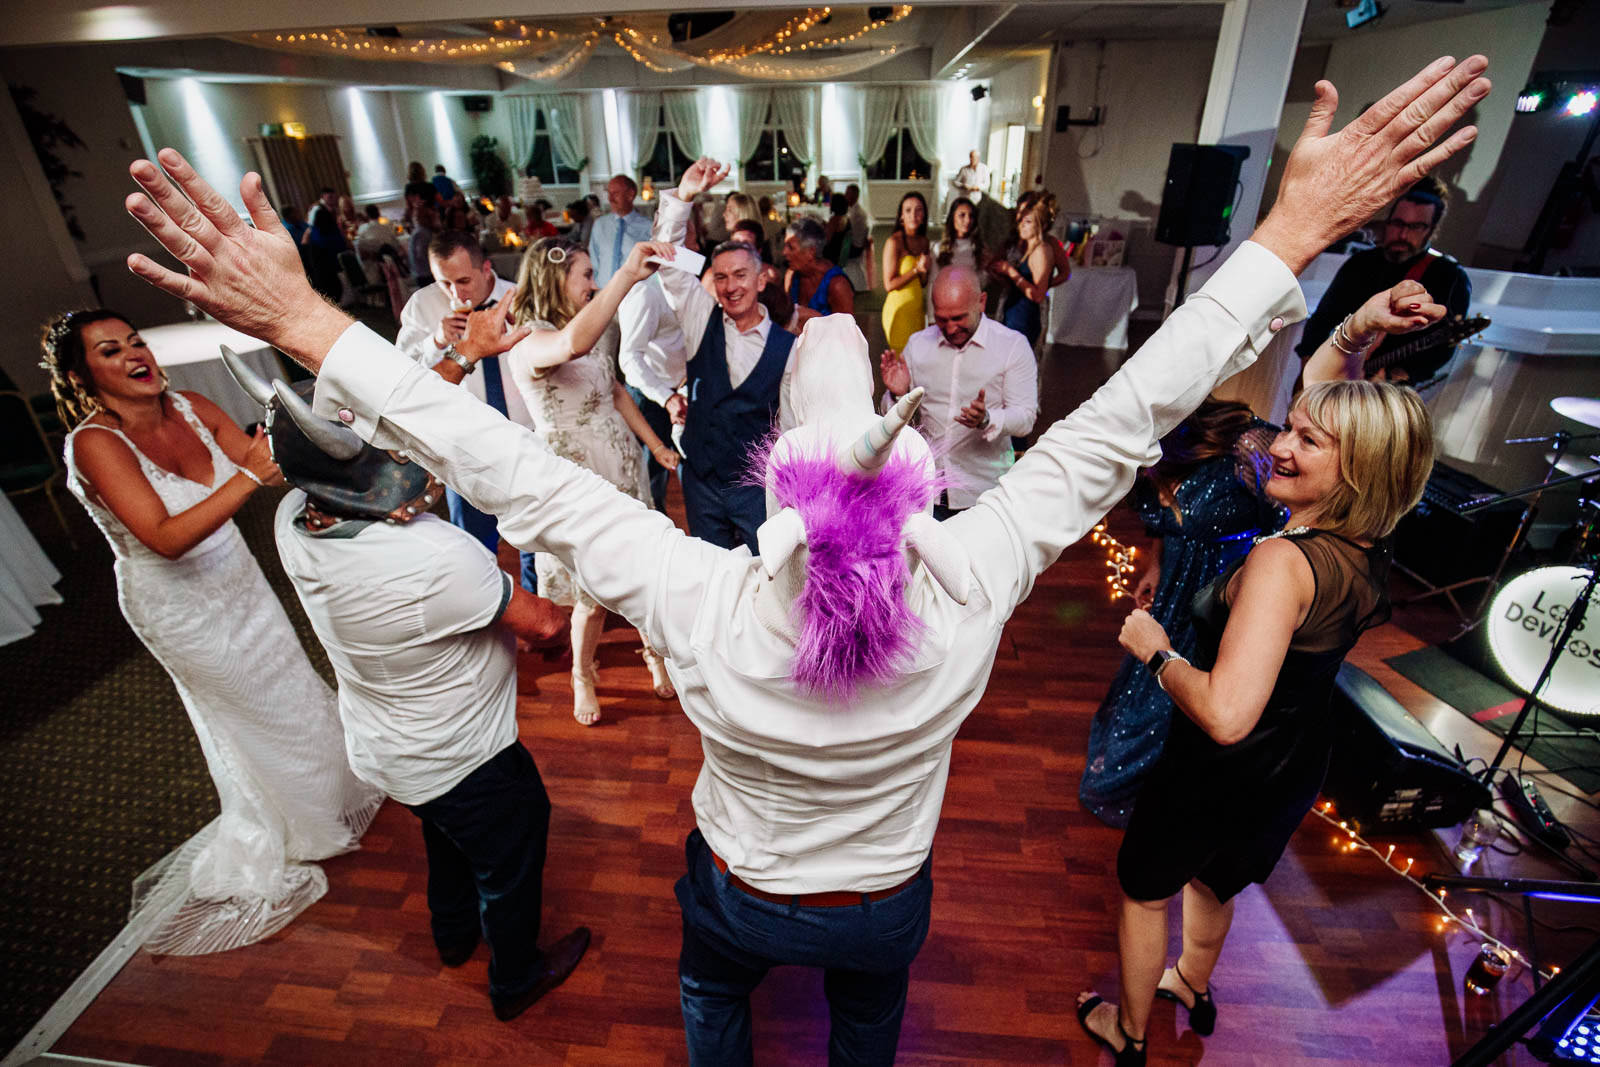 Best man dressed as a unicorn on the dance floor at a wedding in Swansea